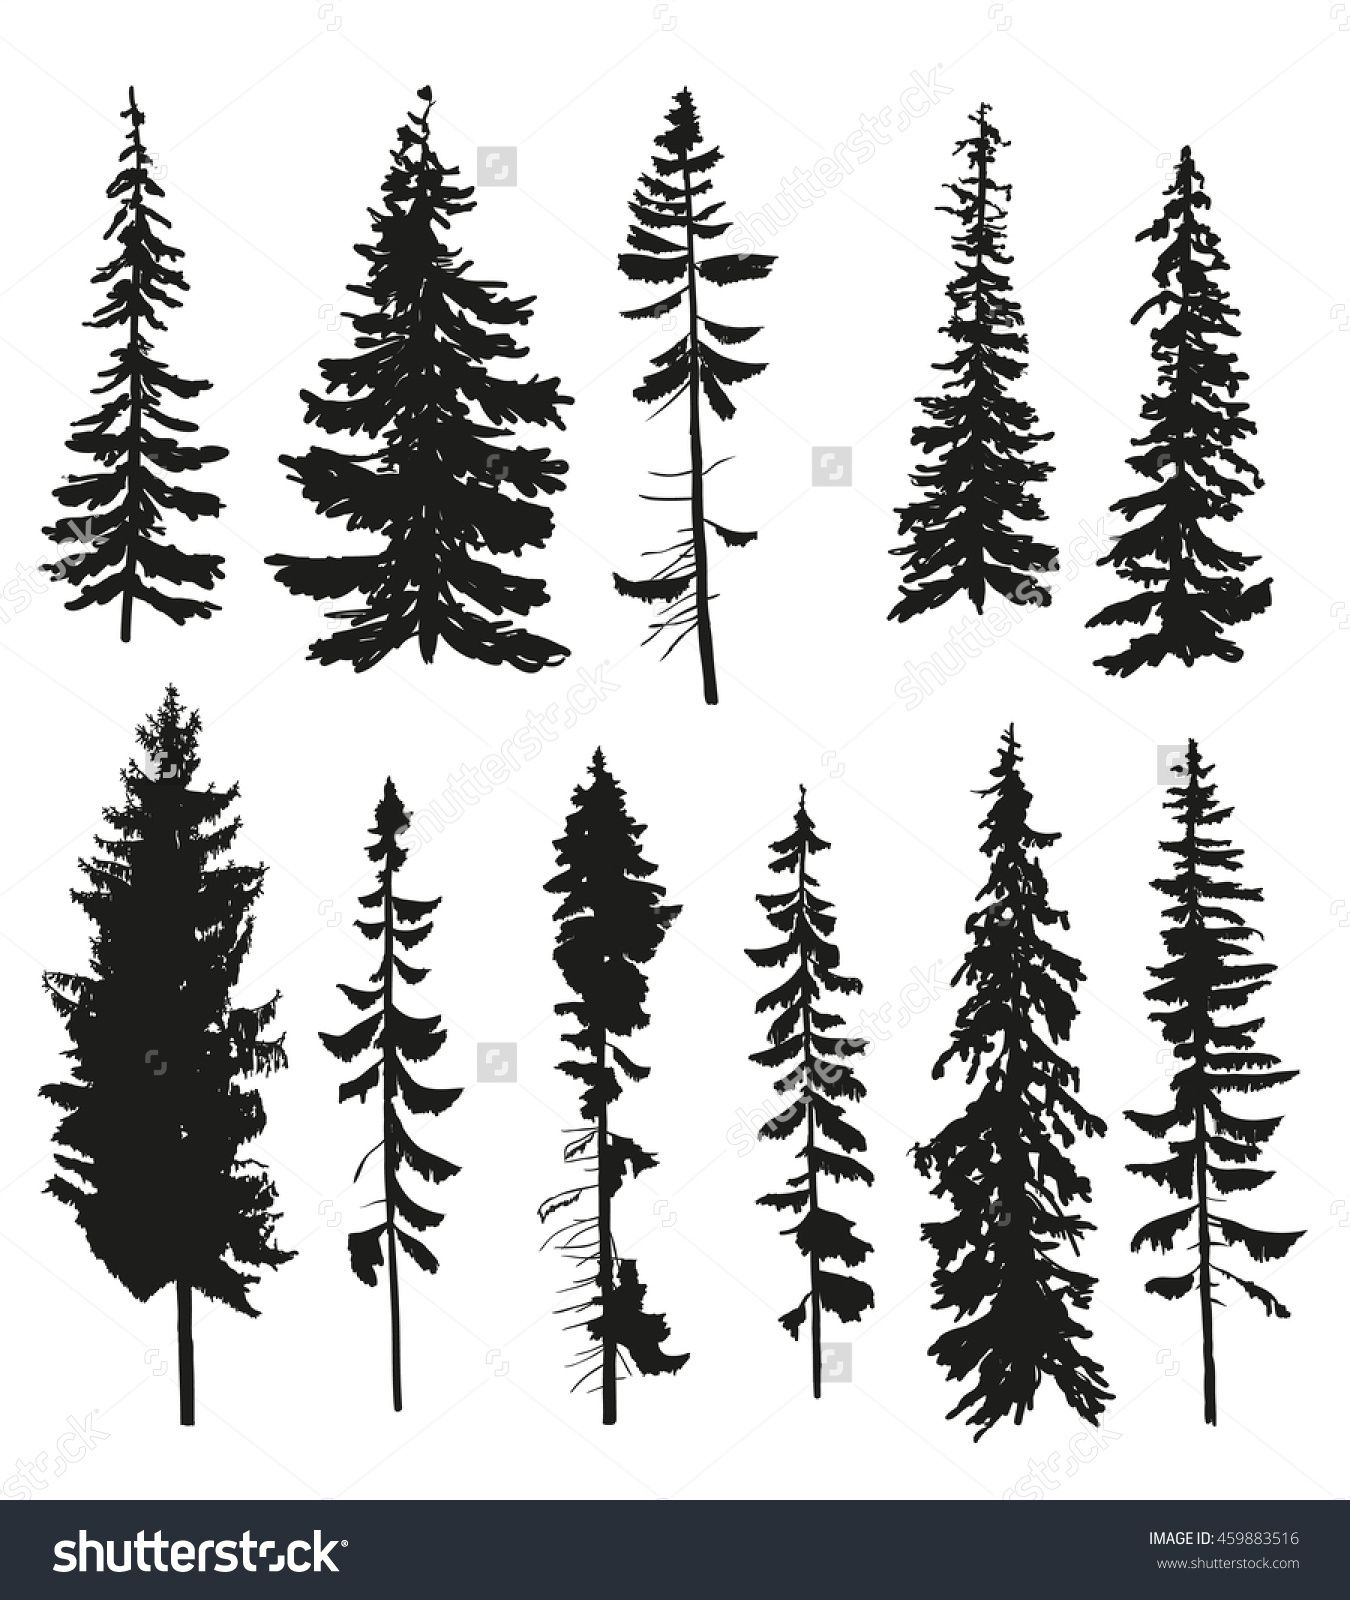 Vector Silhouettes Of Different Pine Trees. 459883516